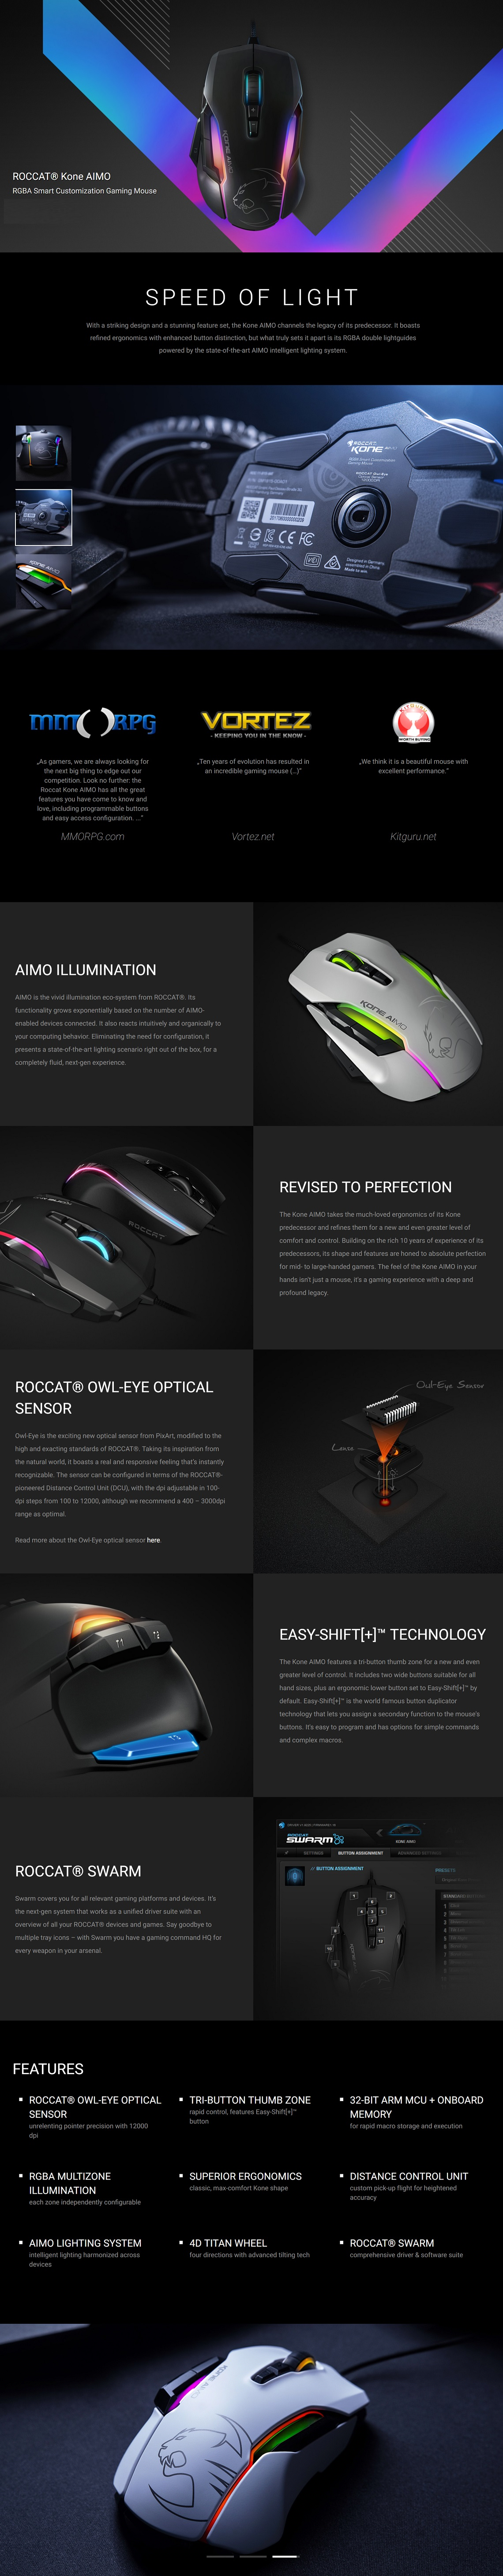 Roccat Kone AIMO RGBA Smart Customization Gaming Mouse - Grey Version